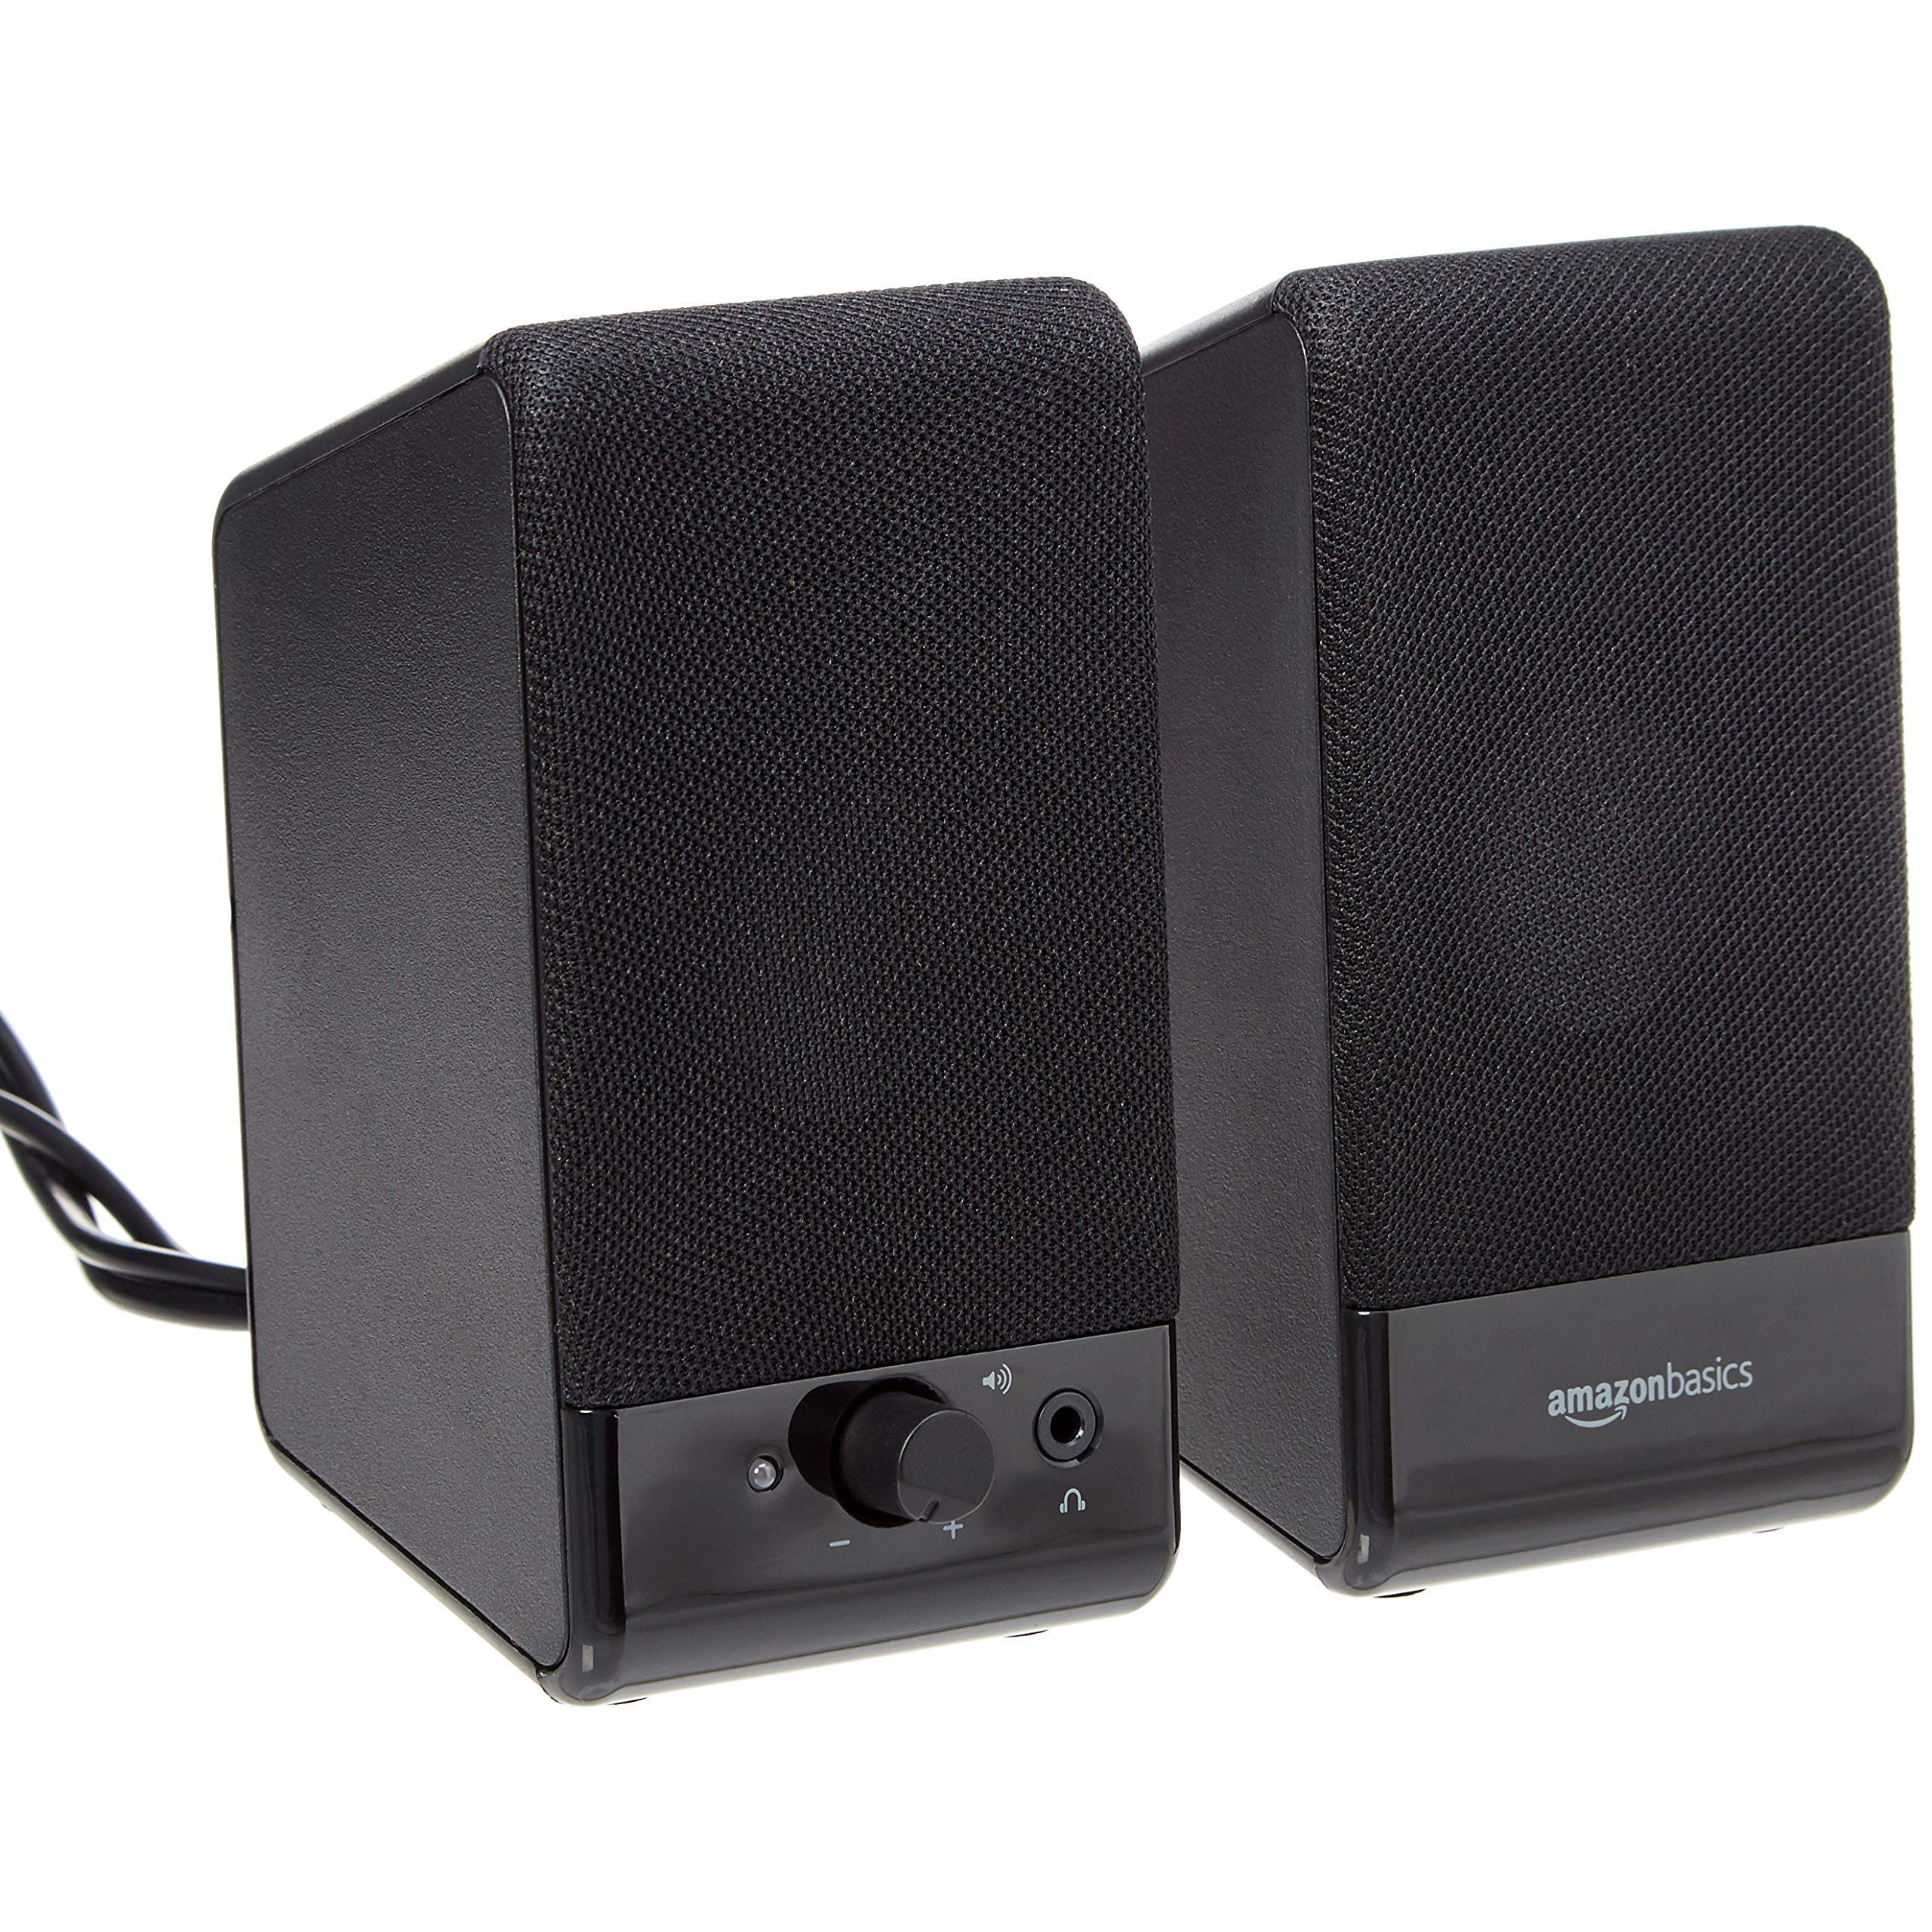 Amazon Basics Computer Speakers for Desktop or Laptop PC | USB-Powered